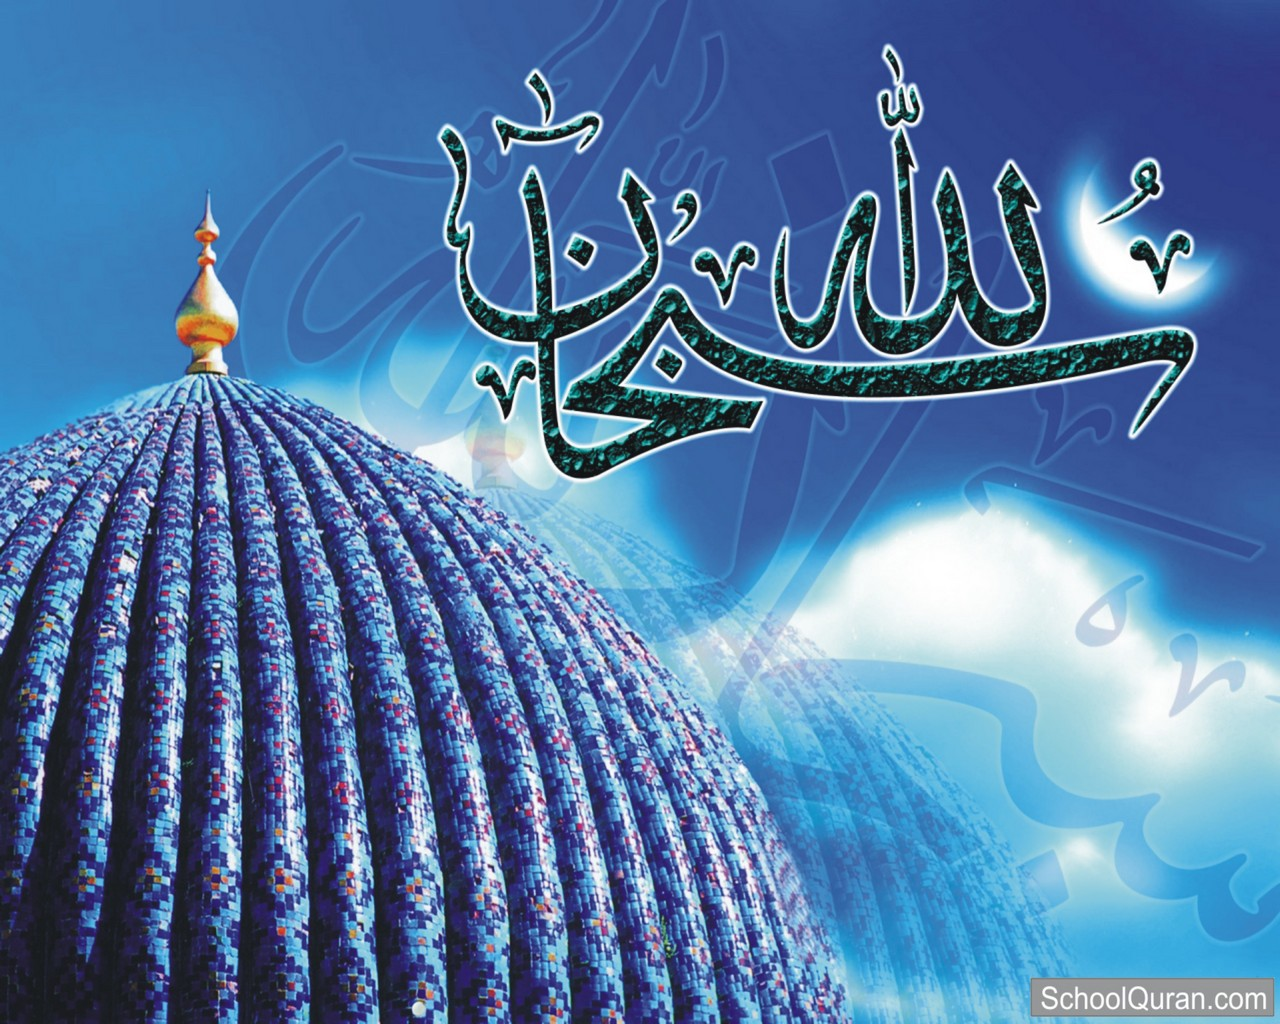 Top Islamic Wallpapers HD | Islam Wallpaper | Islamic Wallpaper Free &WS97